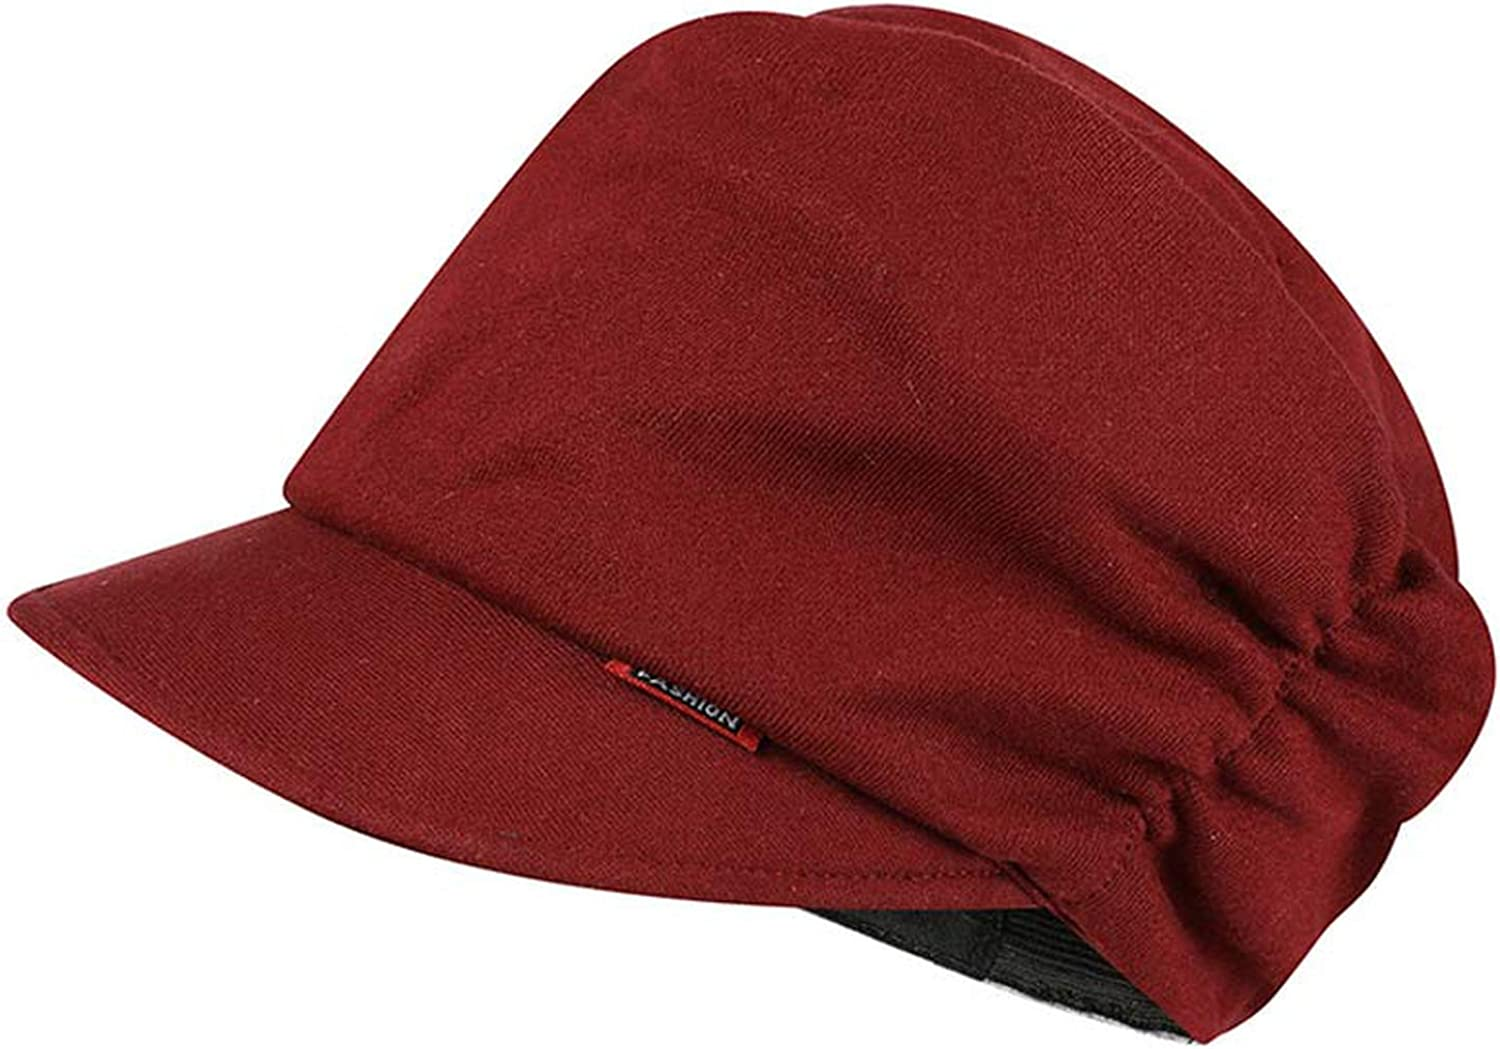 ANDERDM Womens Elastic Beret Cap Cotton Knitted Newsboy Style Hat Brown Grey Yellow Dark Red